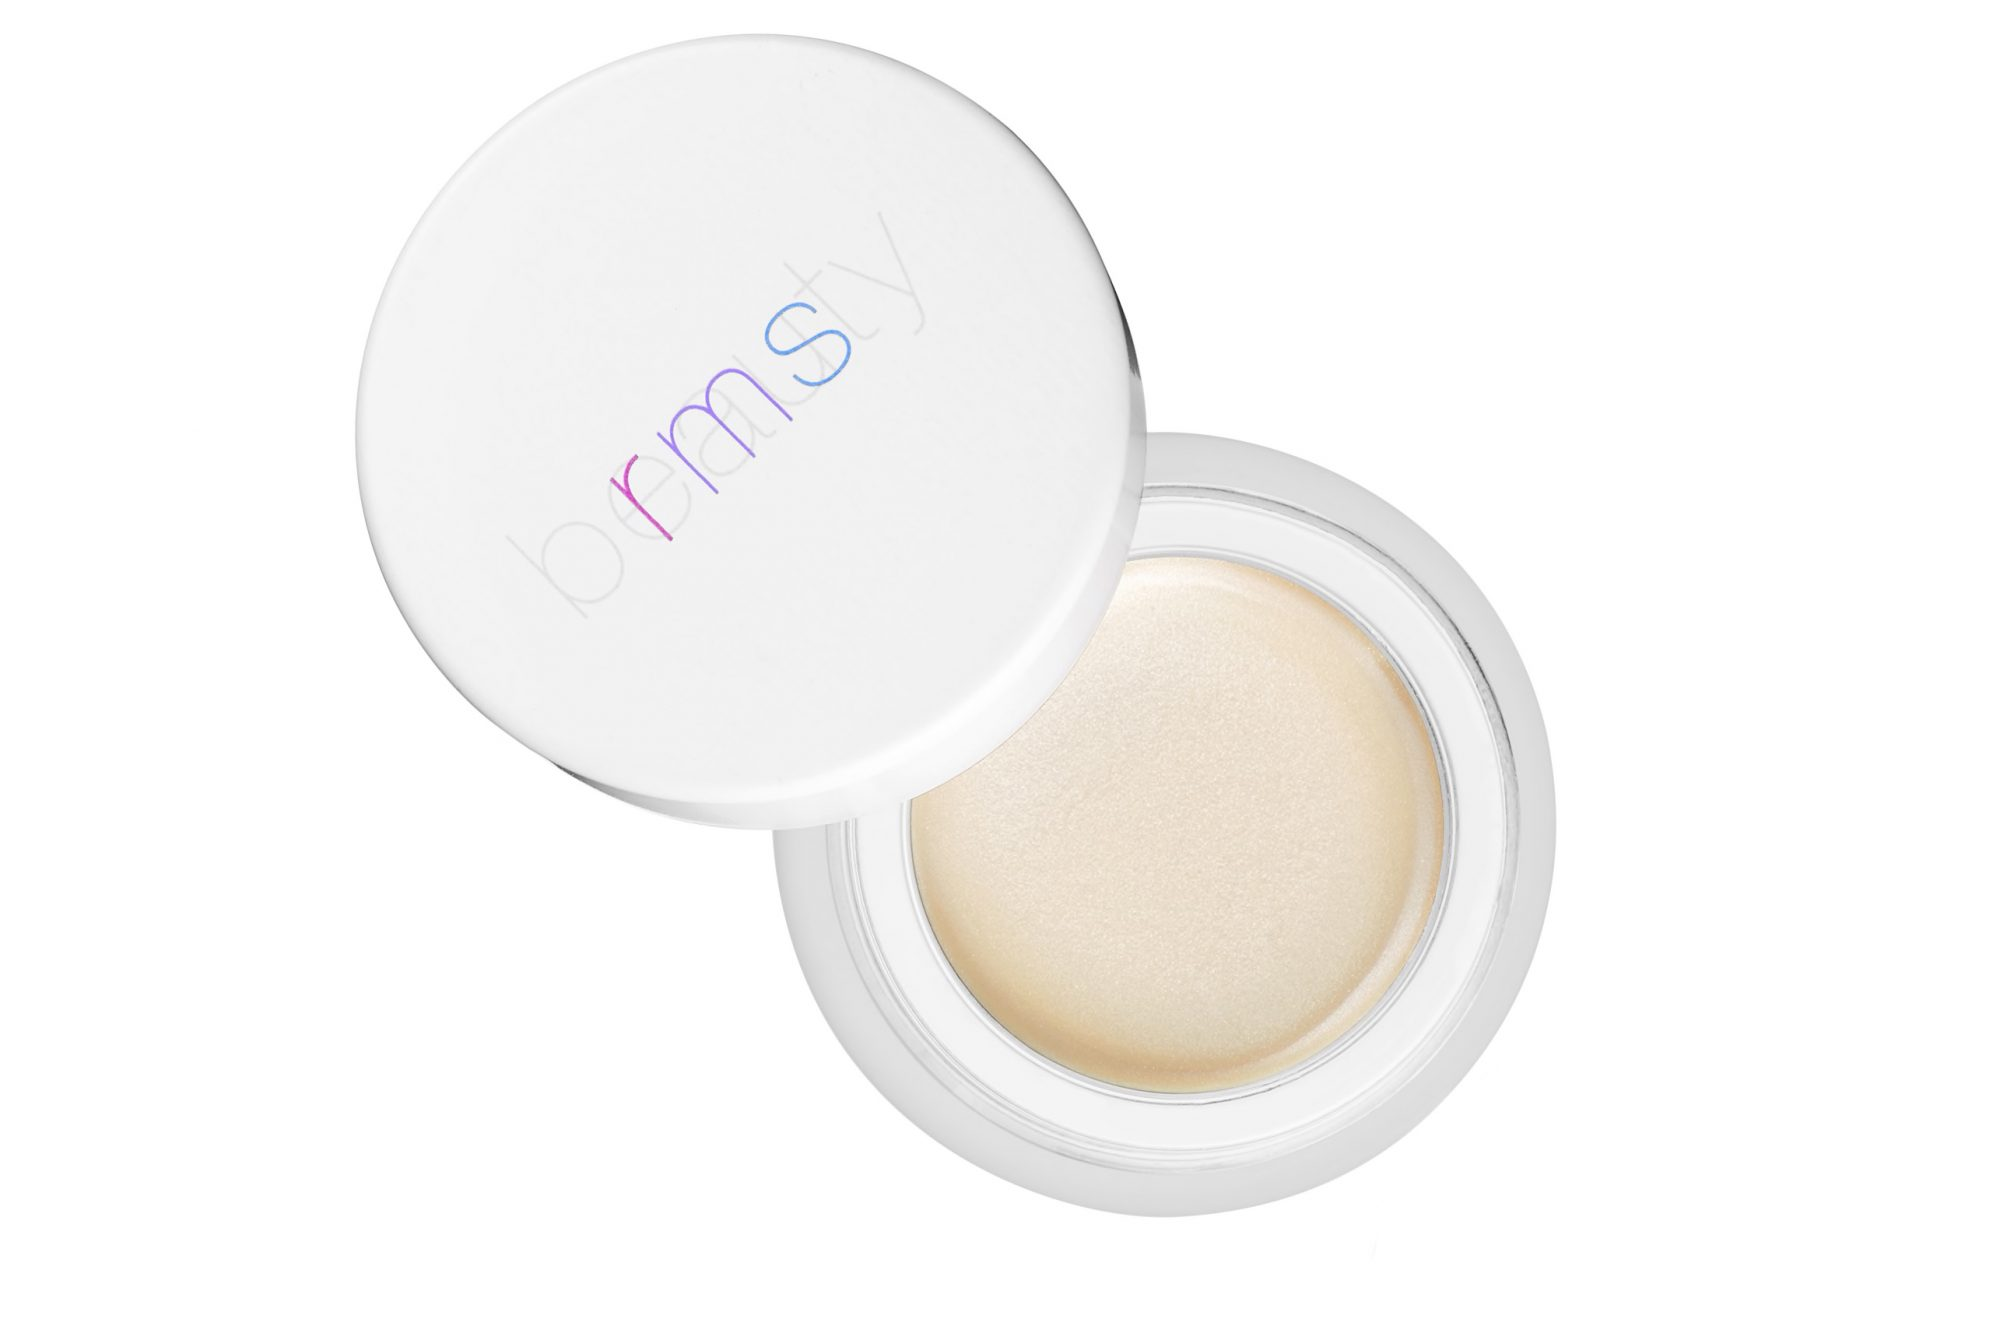 clean sustainable eco-friendly beauty rms living luminizer